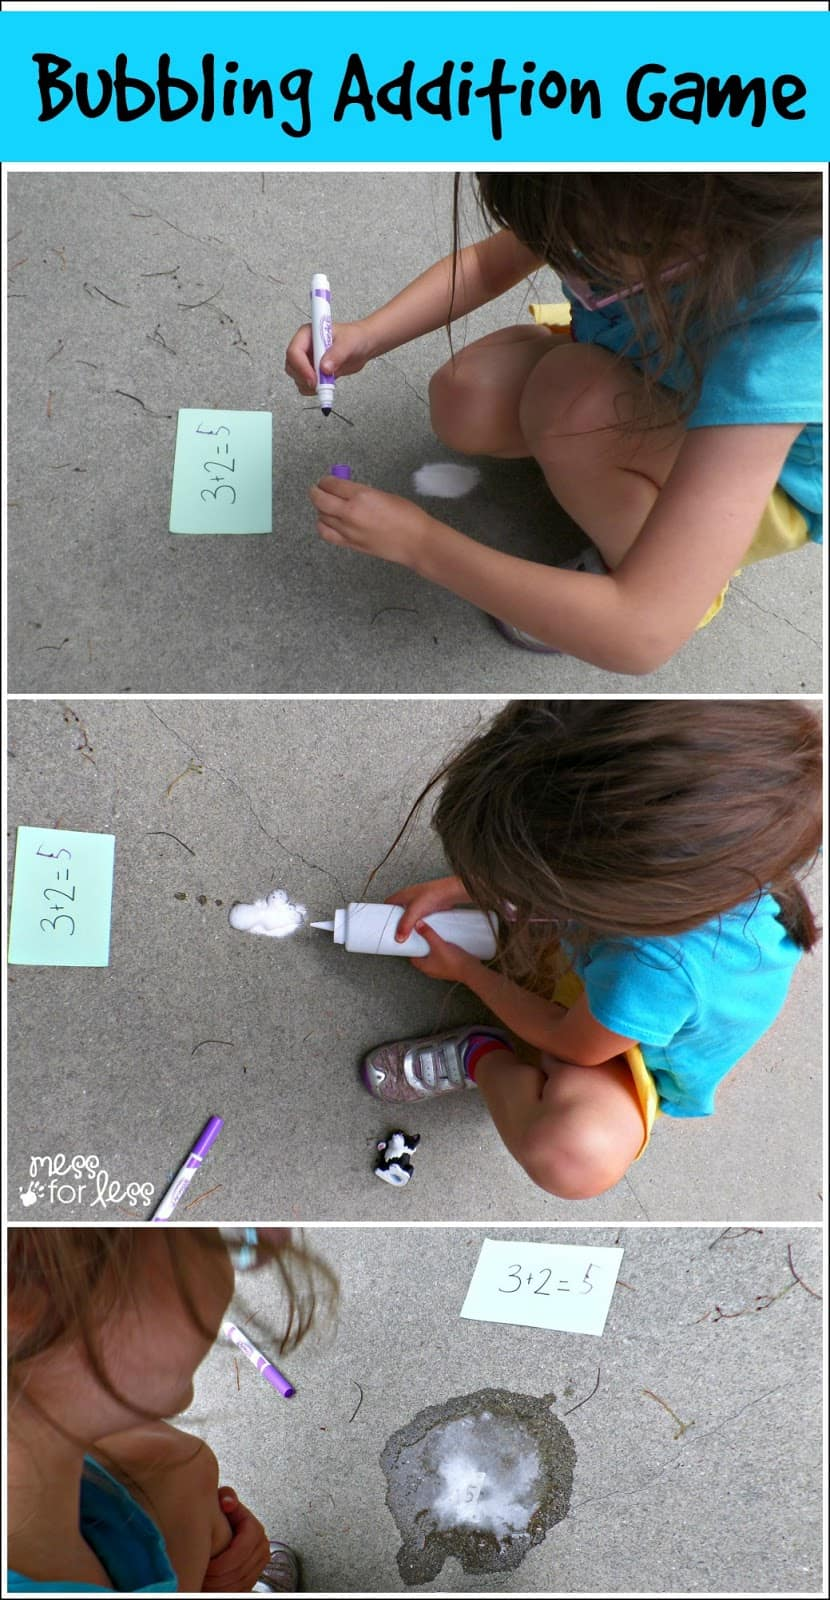 Bubbling Addition - This Kindergarten Math Game will help kids learn and review addition facts in a fun hands on way.